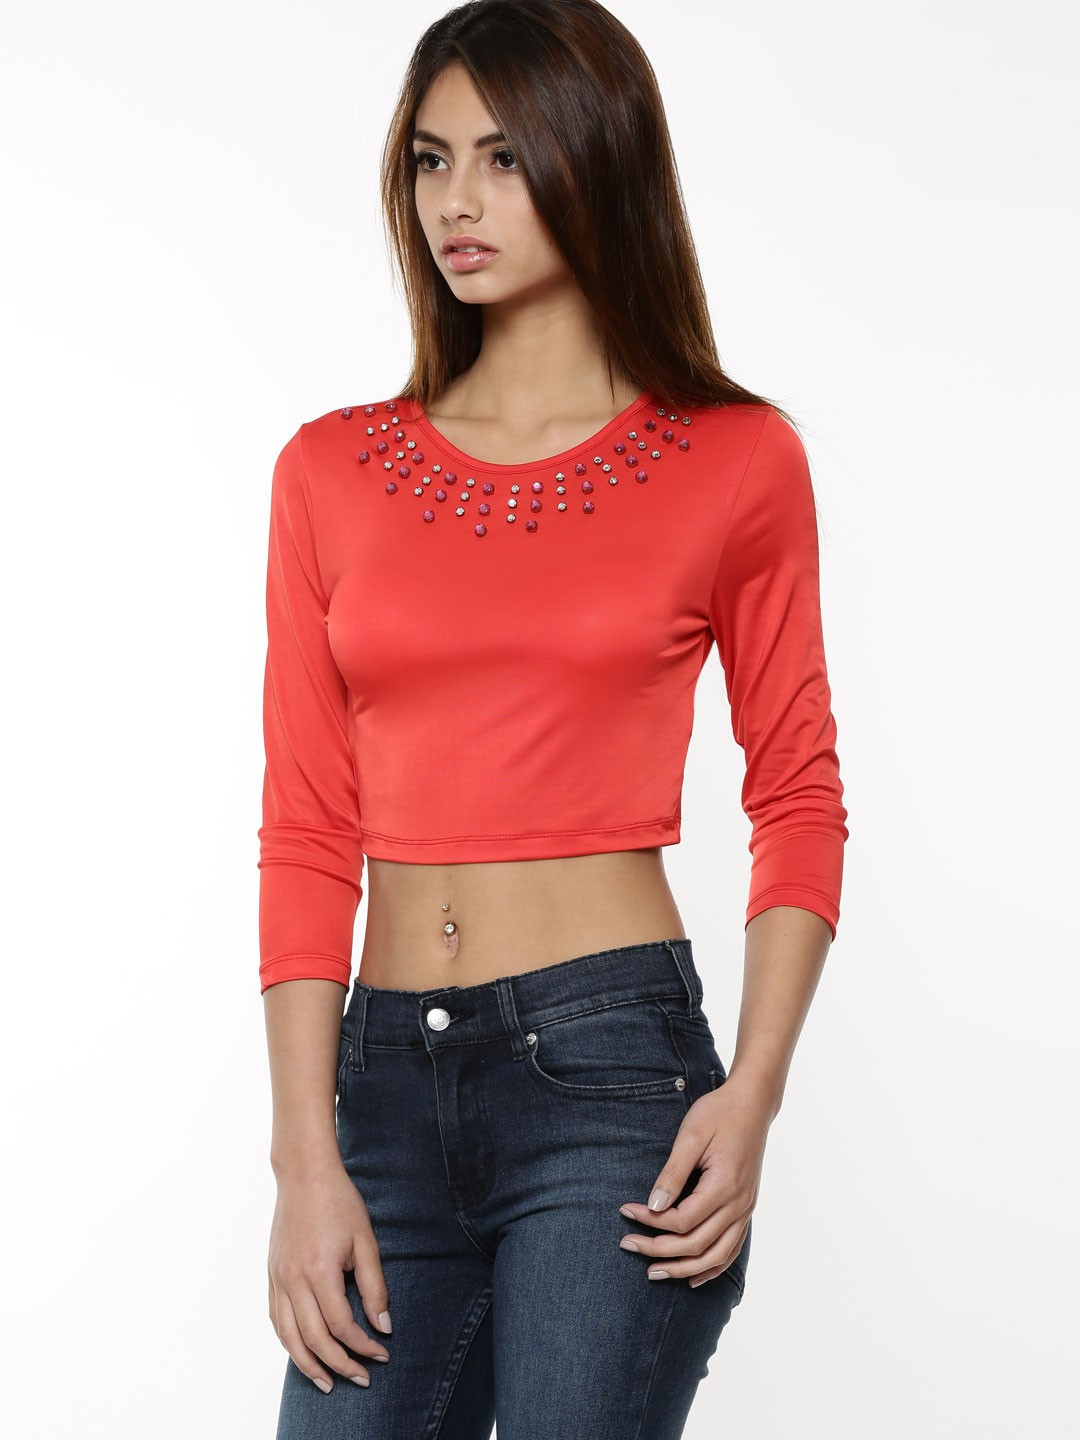 Buy crop tops for girls at unbelievably low prices that can increase the joy of your shopping multiple times. With Zipker you can rest assured that the items that you will be buying will be of the best and the most commendable quality.